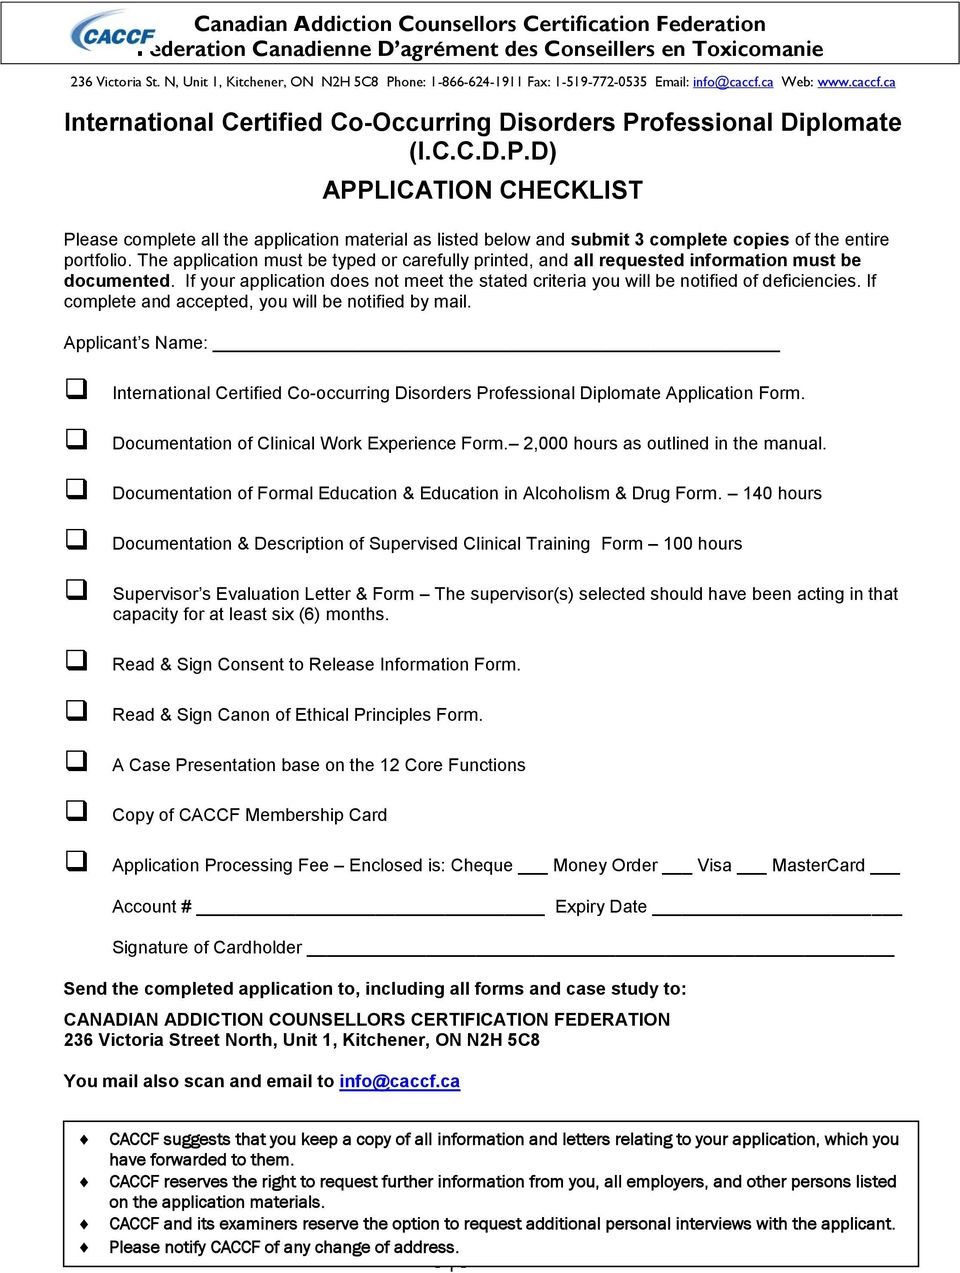 If complete and accepted, you will be notified by mail. Applicant s Name: International Certified Co-occurring Disorders Professional Diplomate Application Form.